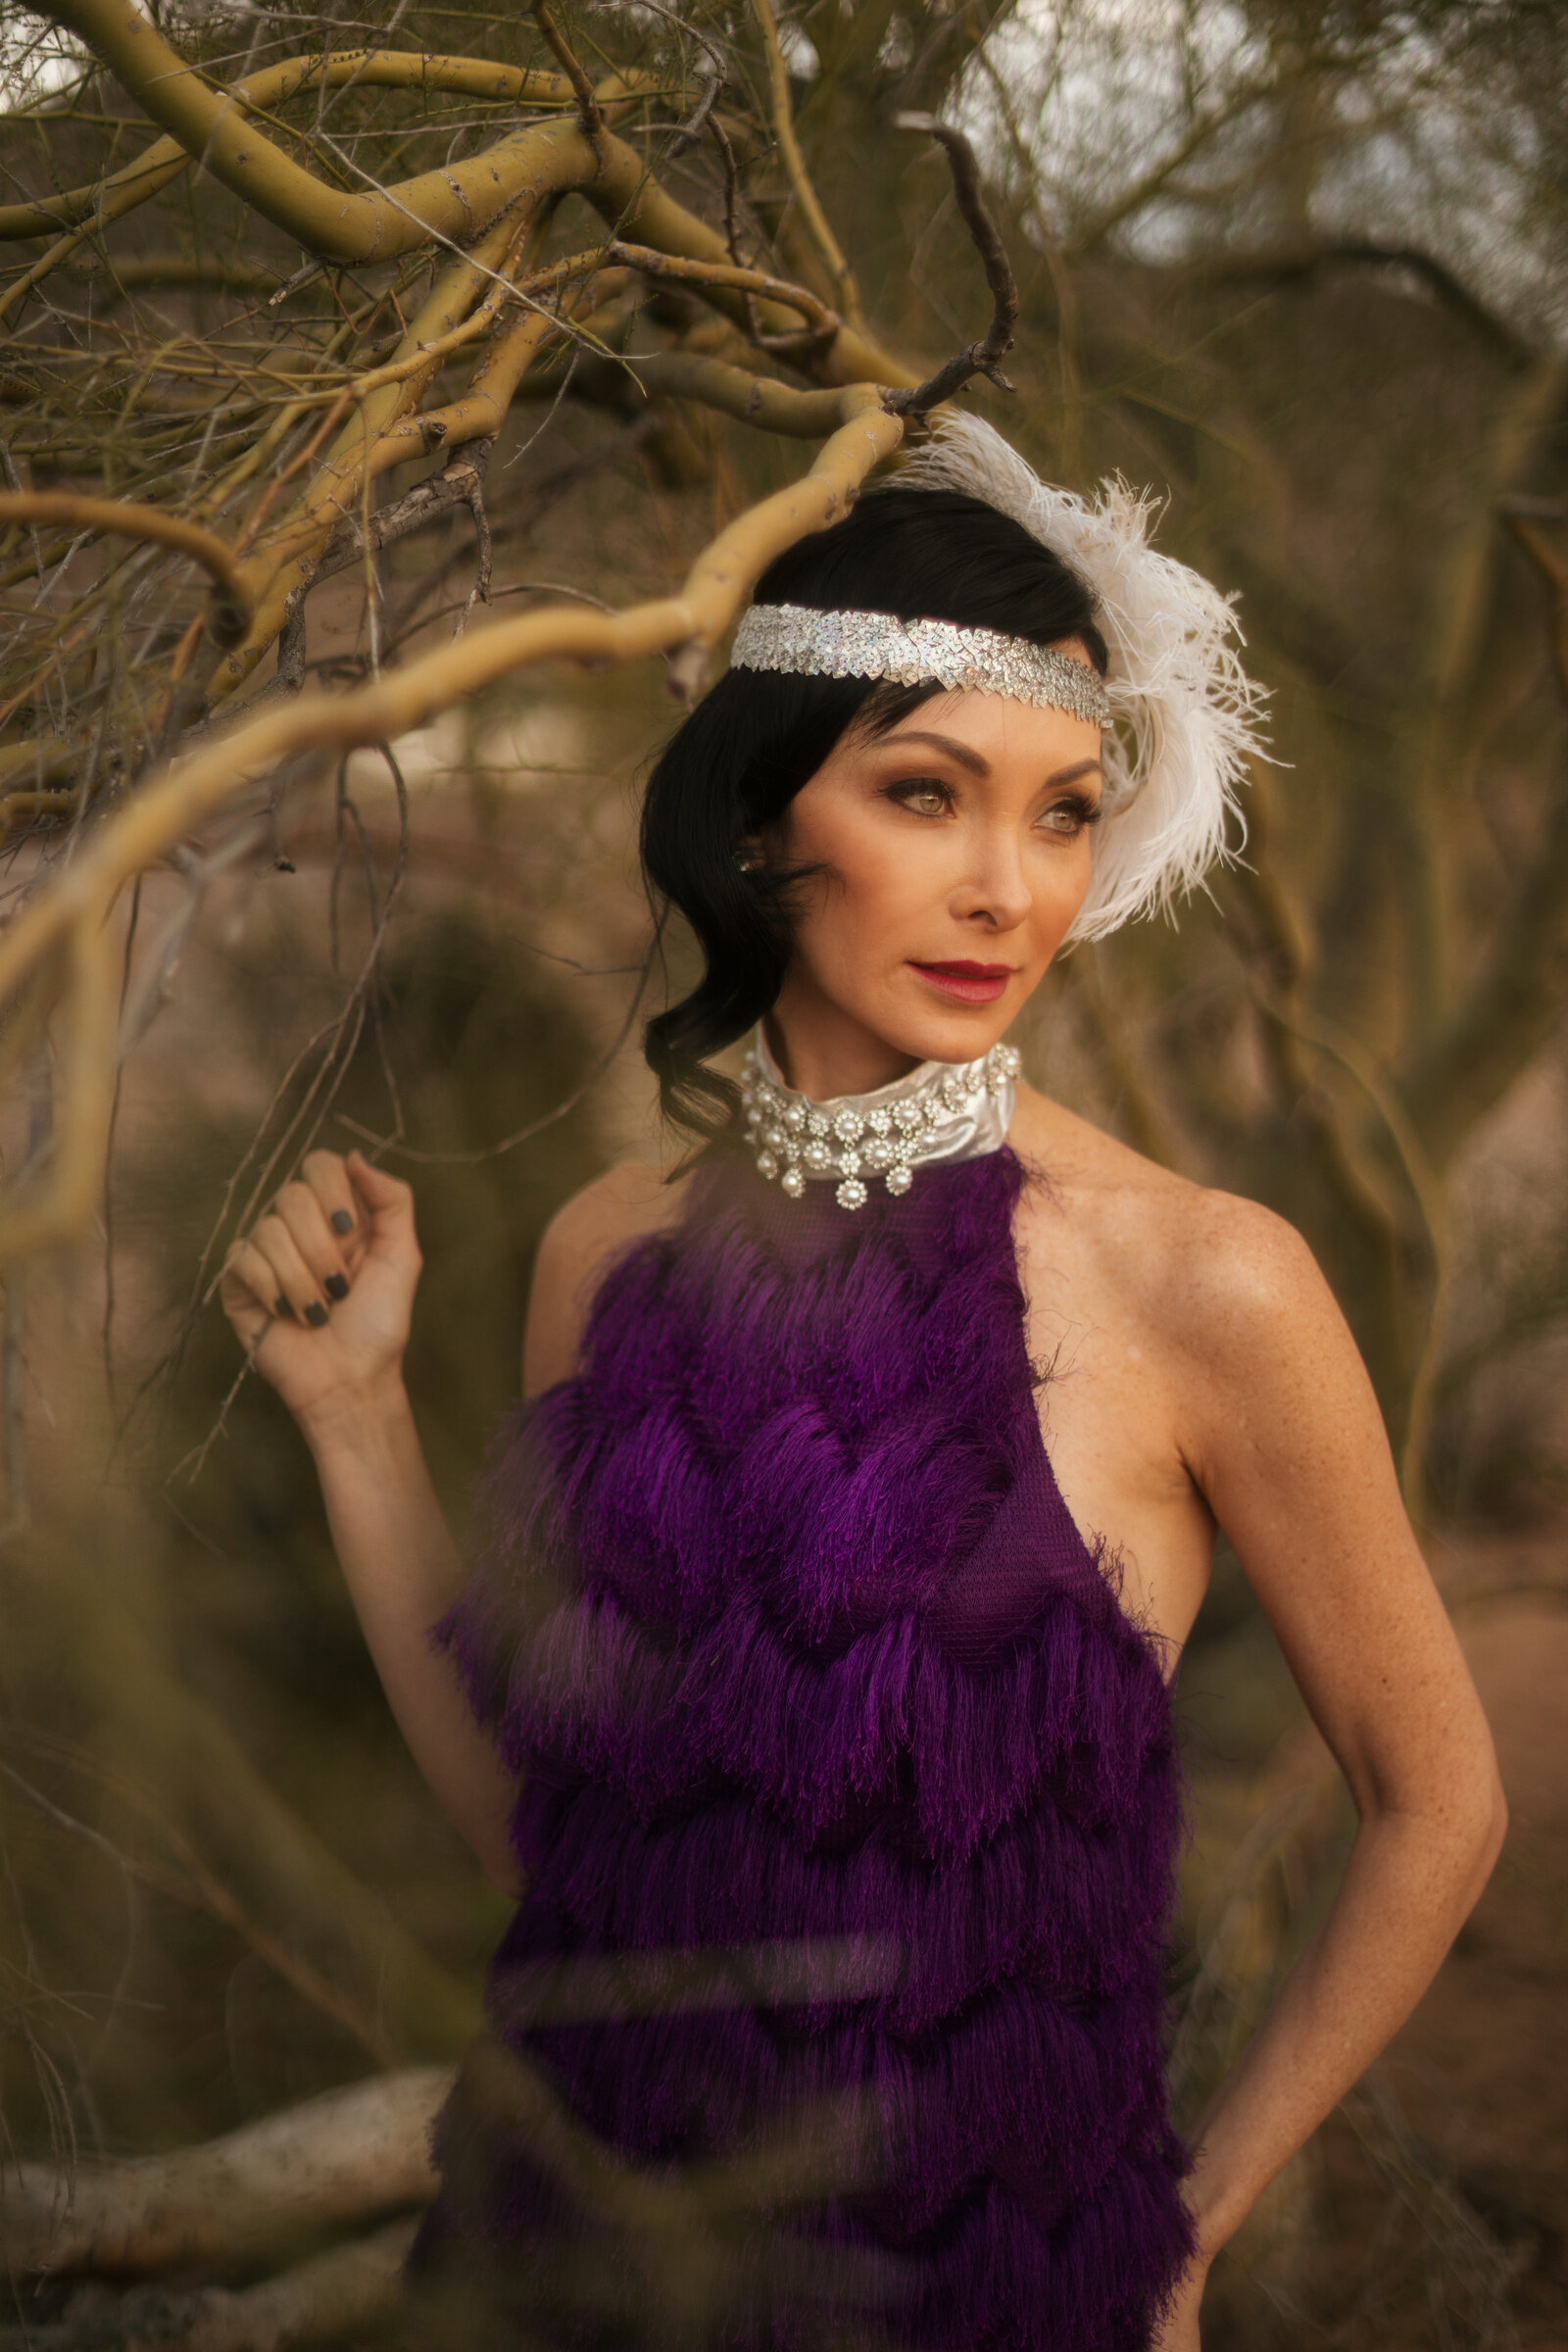 Bespoke purple fringe high collar dress accented with  silver jewelly.jpg